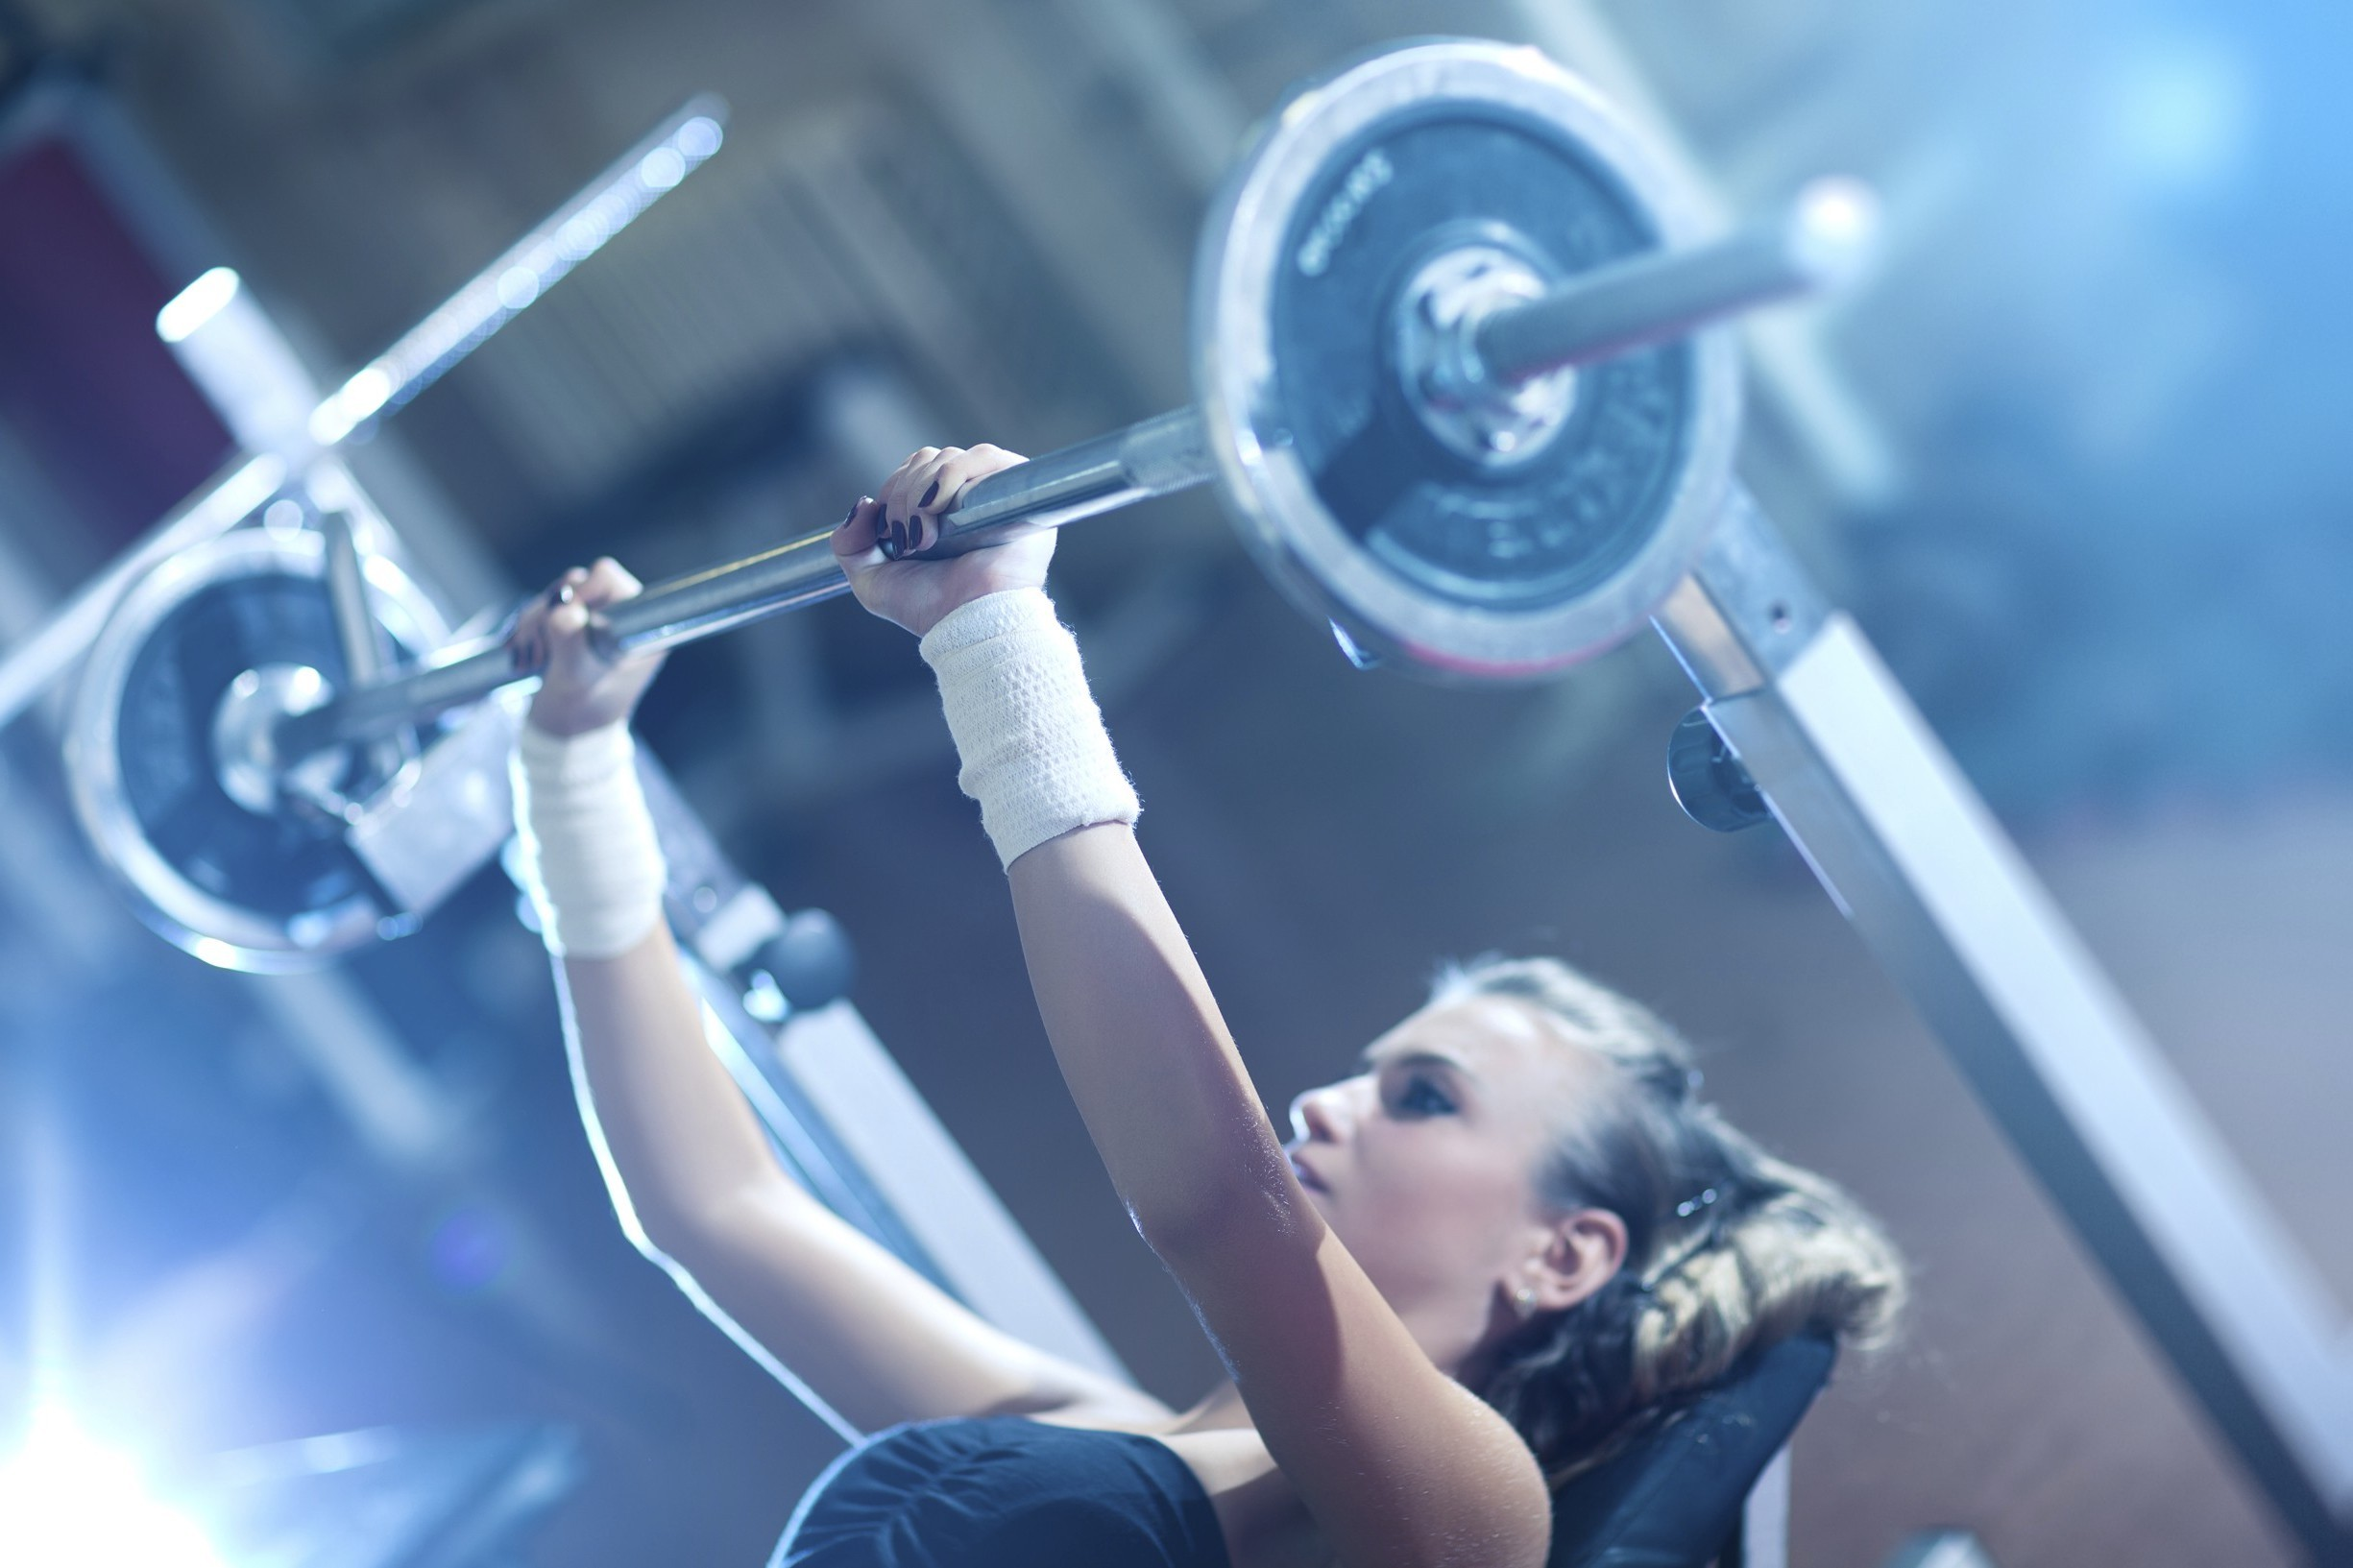 essay on lifting weights Important essay: lifting and your  see articles like this dispelling some common myths about lifting  a vo2 max test on myself at two different weights.